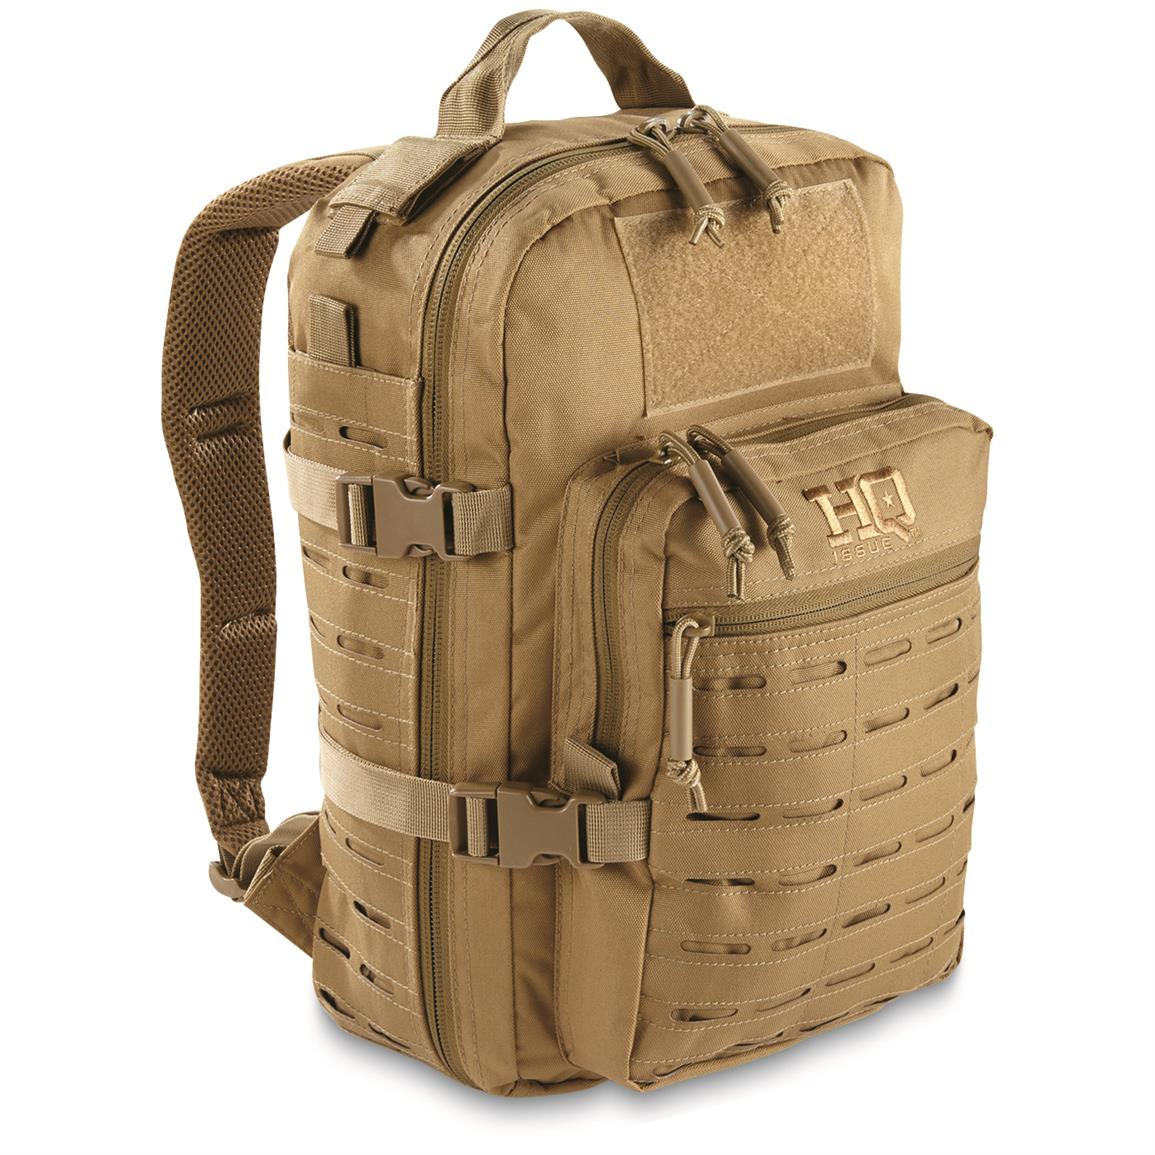 HQ ISSUE Reverse MOLLE Day Pack, Coyote Tan